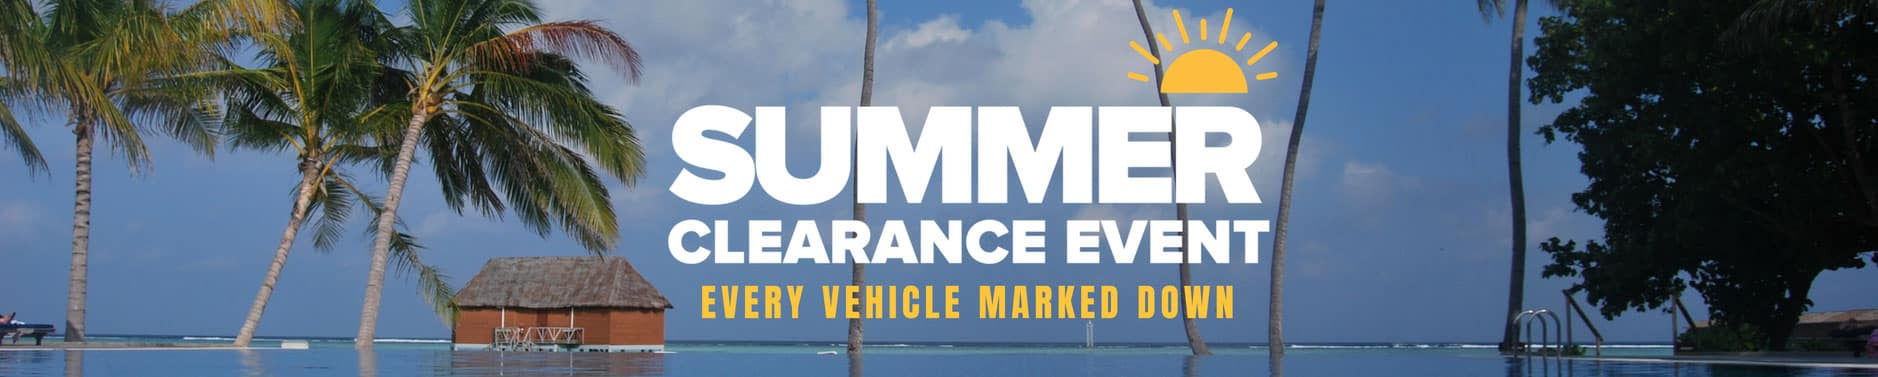 Summer Clearance Event at Kahlo Chrysler Dodge Jeep Ram